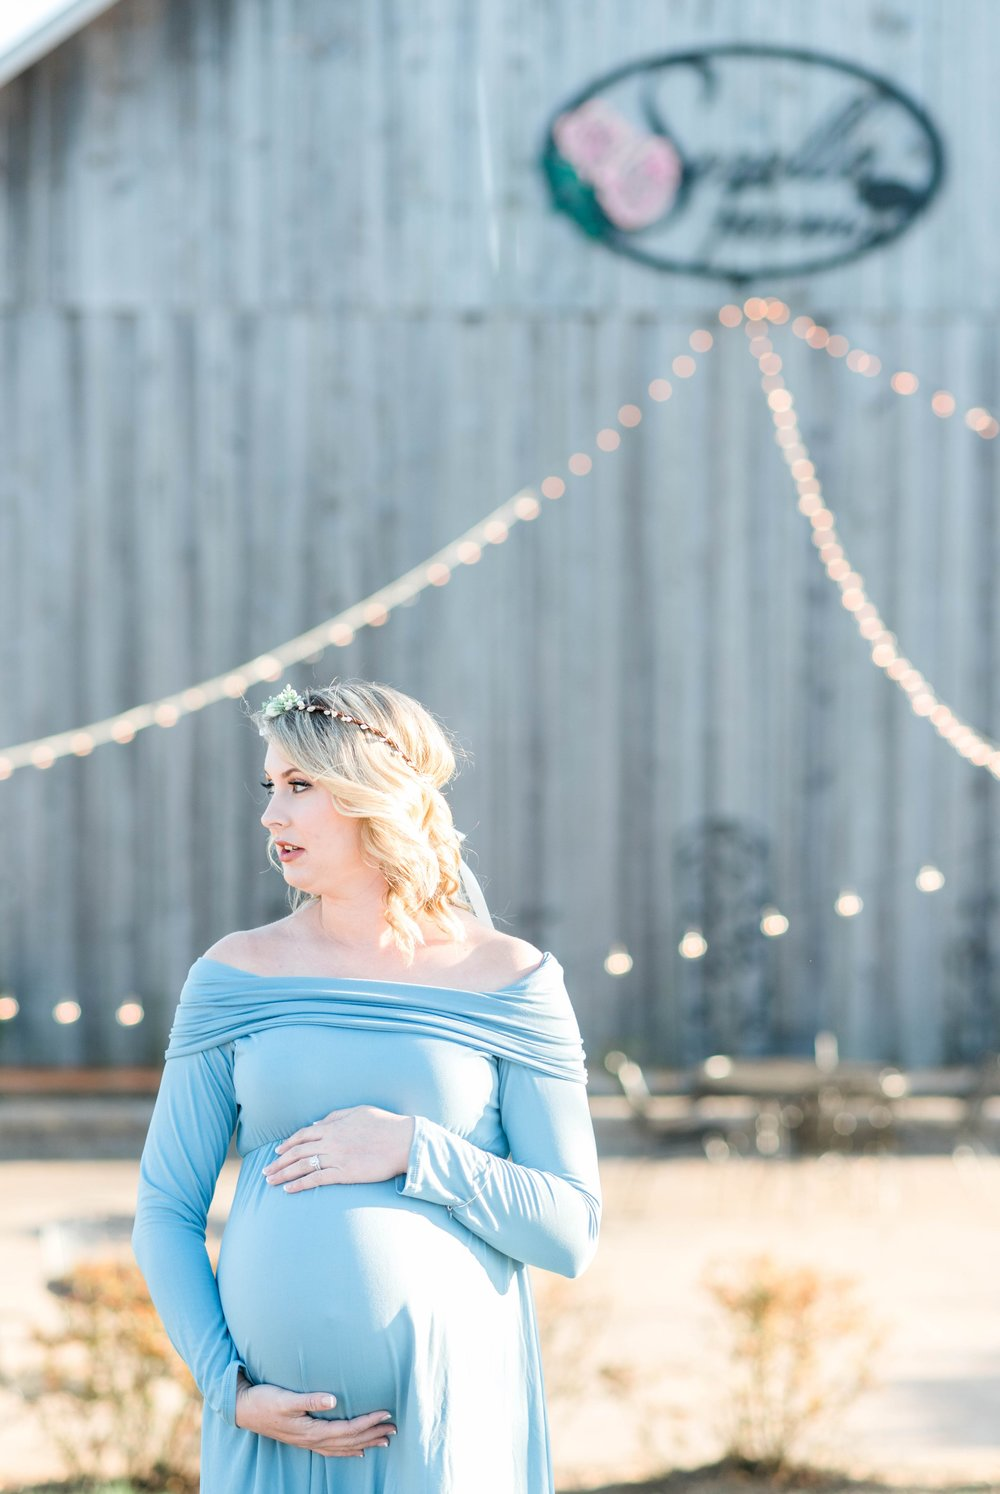 SorellaFarms_Jessica+Dylan_MaternitySession_Virginiaweddingphotographer 22.jpg